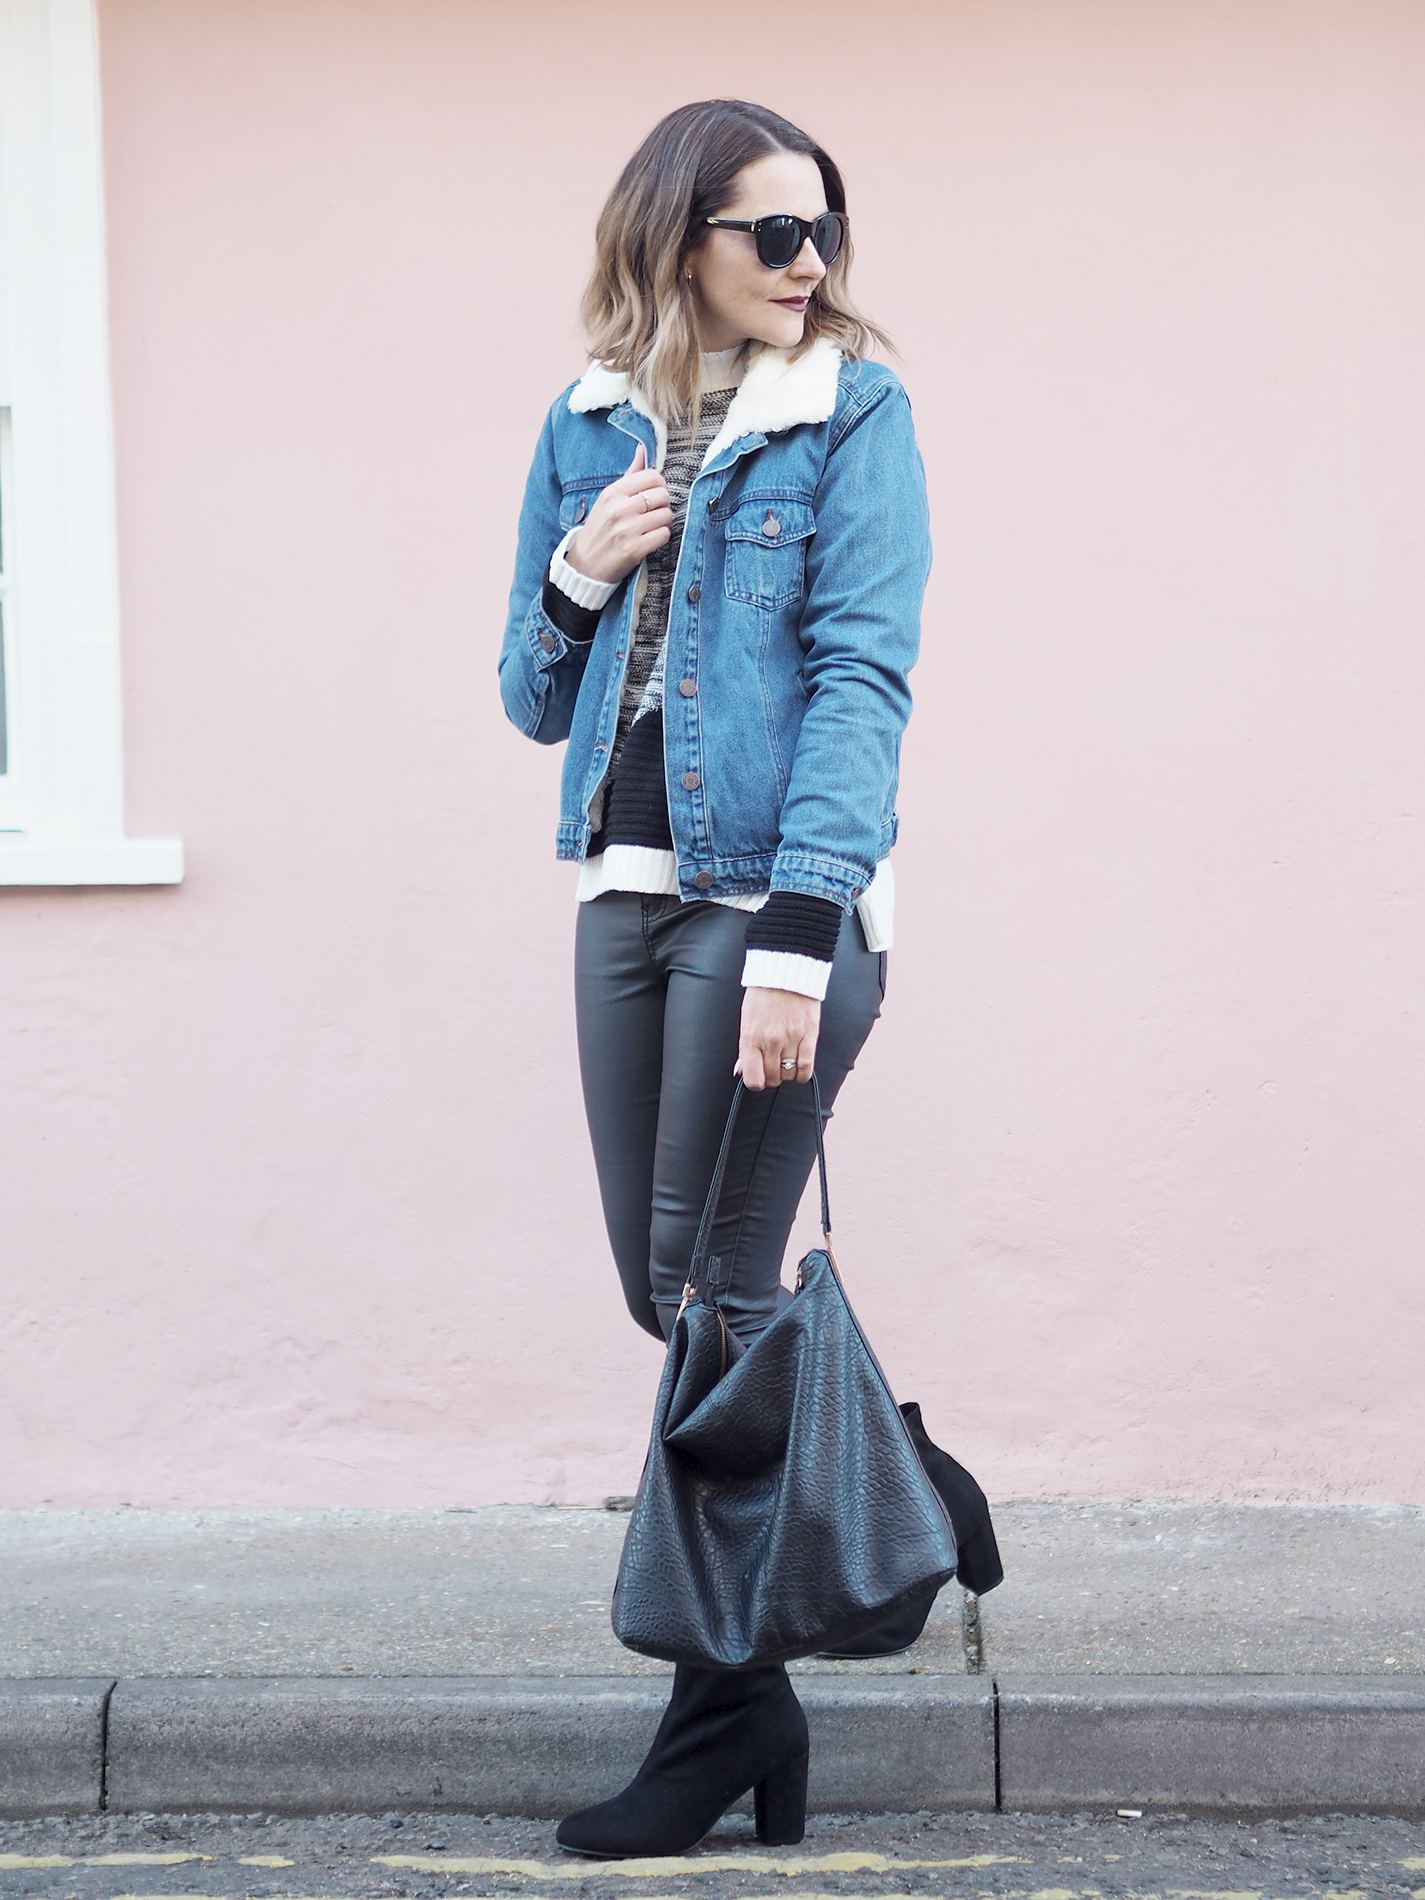 denim jacket and leather jeans outfit